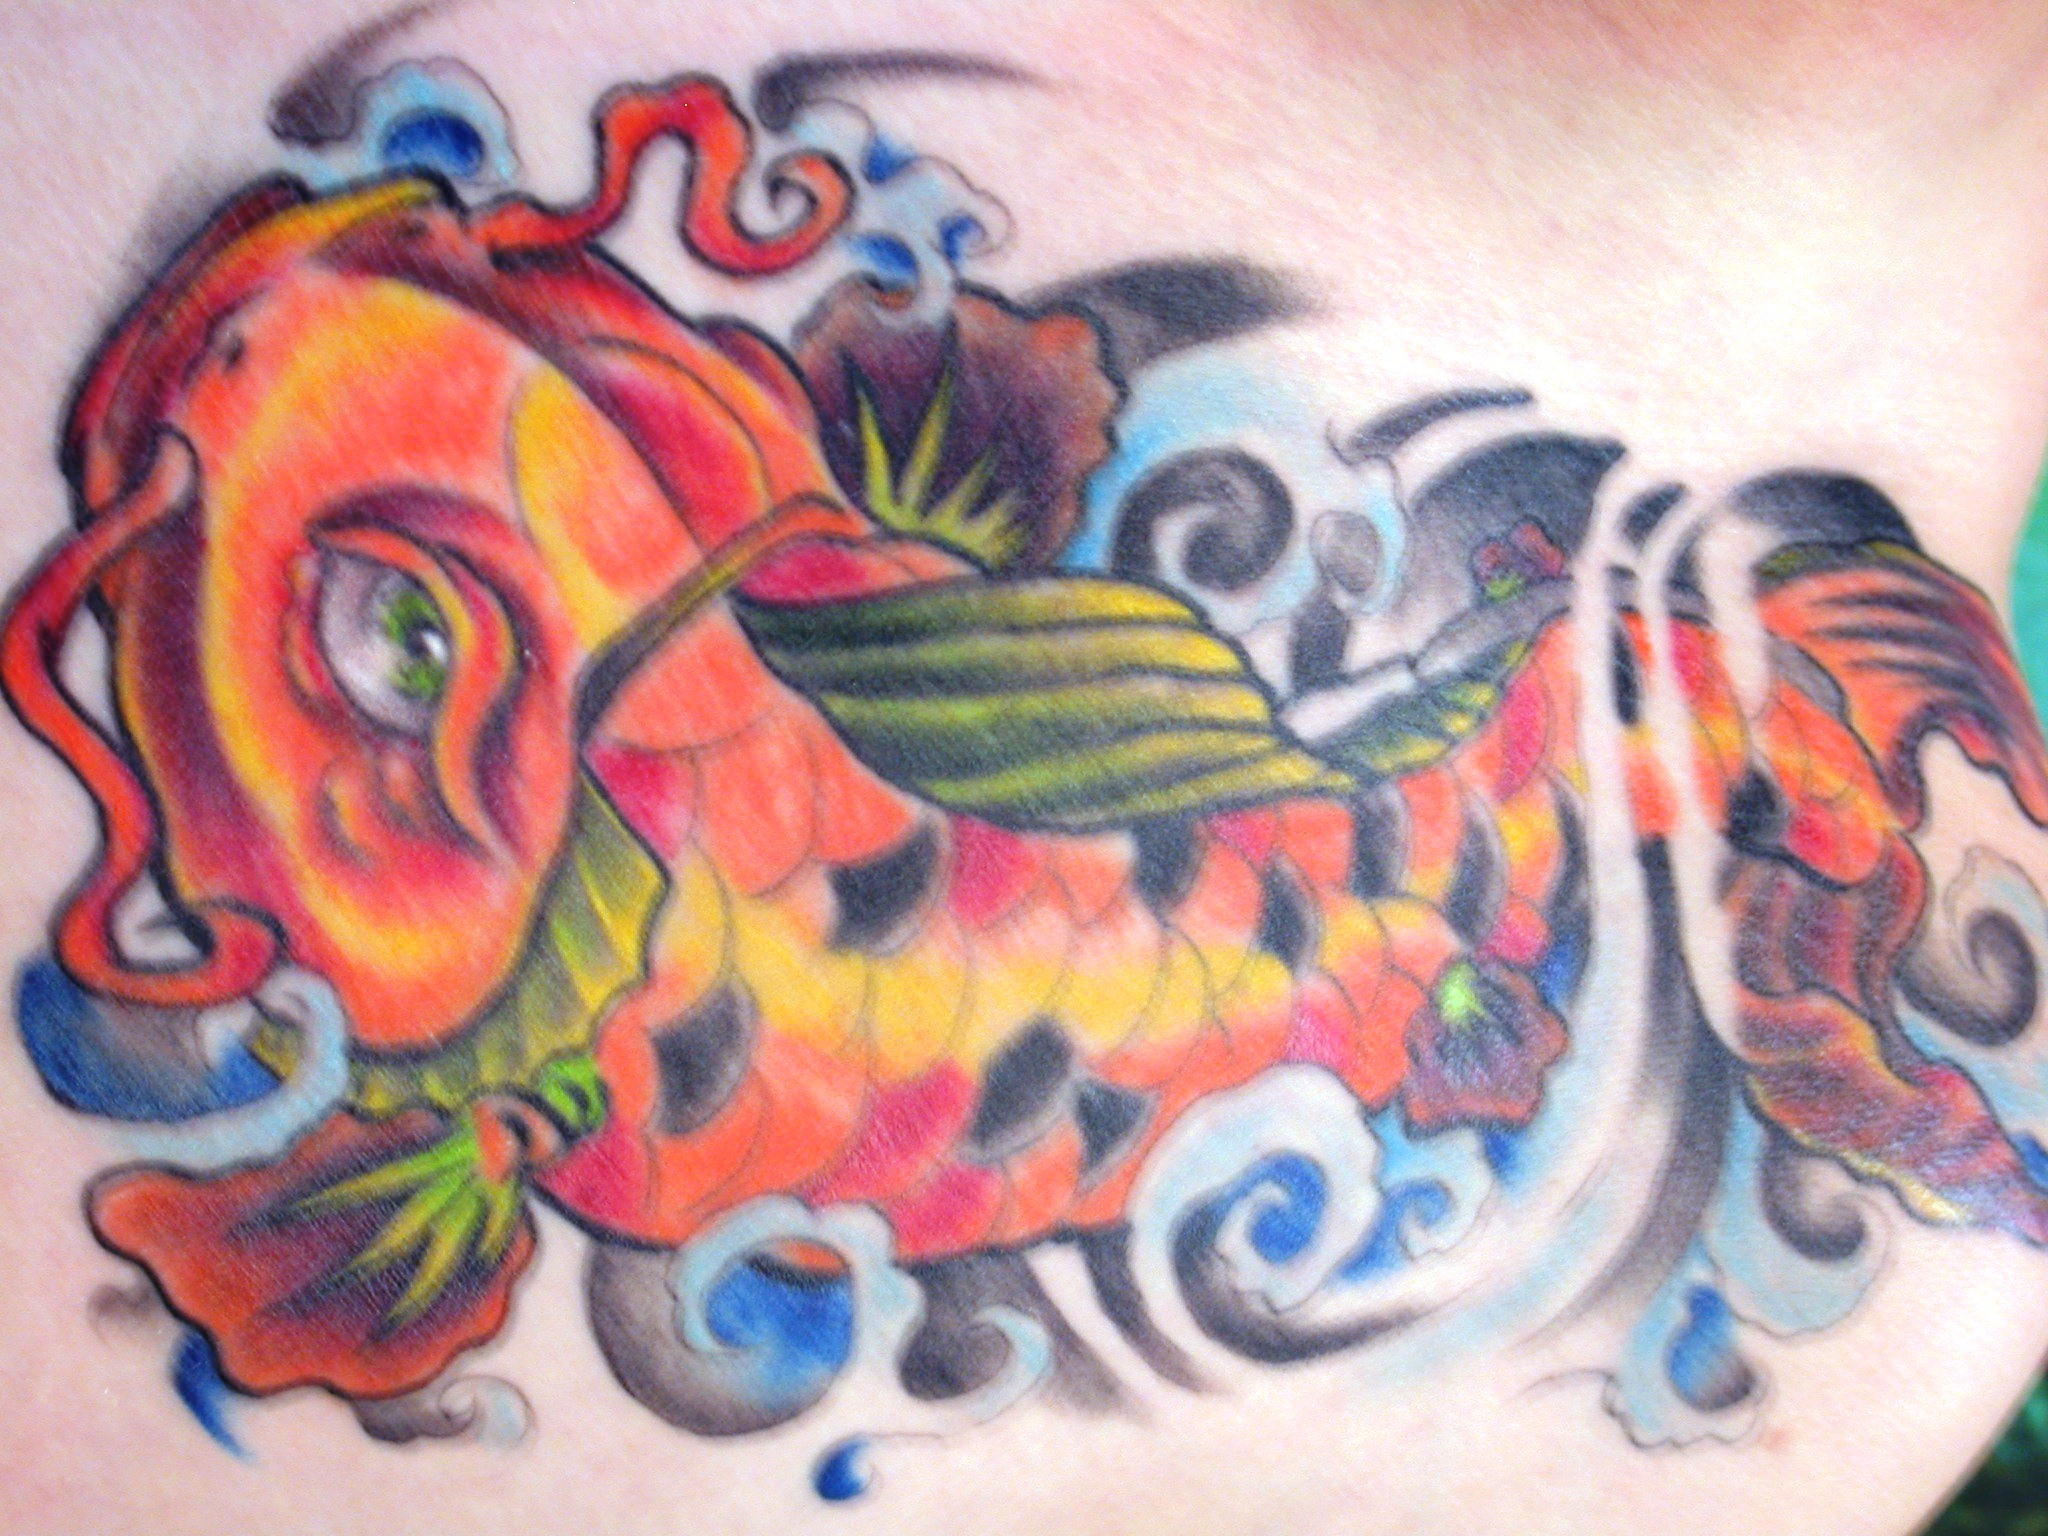 Koi Fish By Digger Dan Tattoo